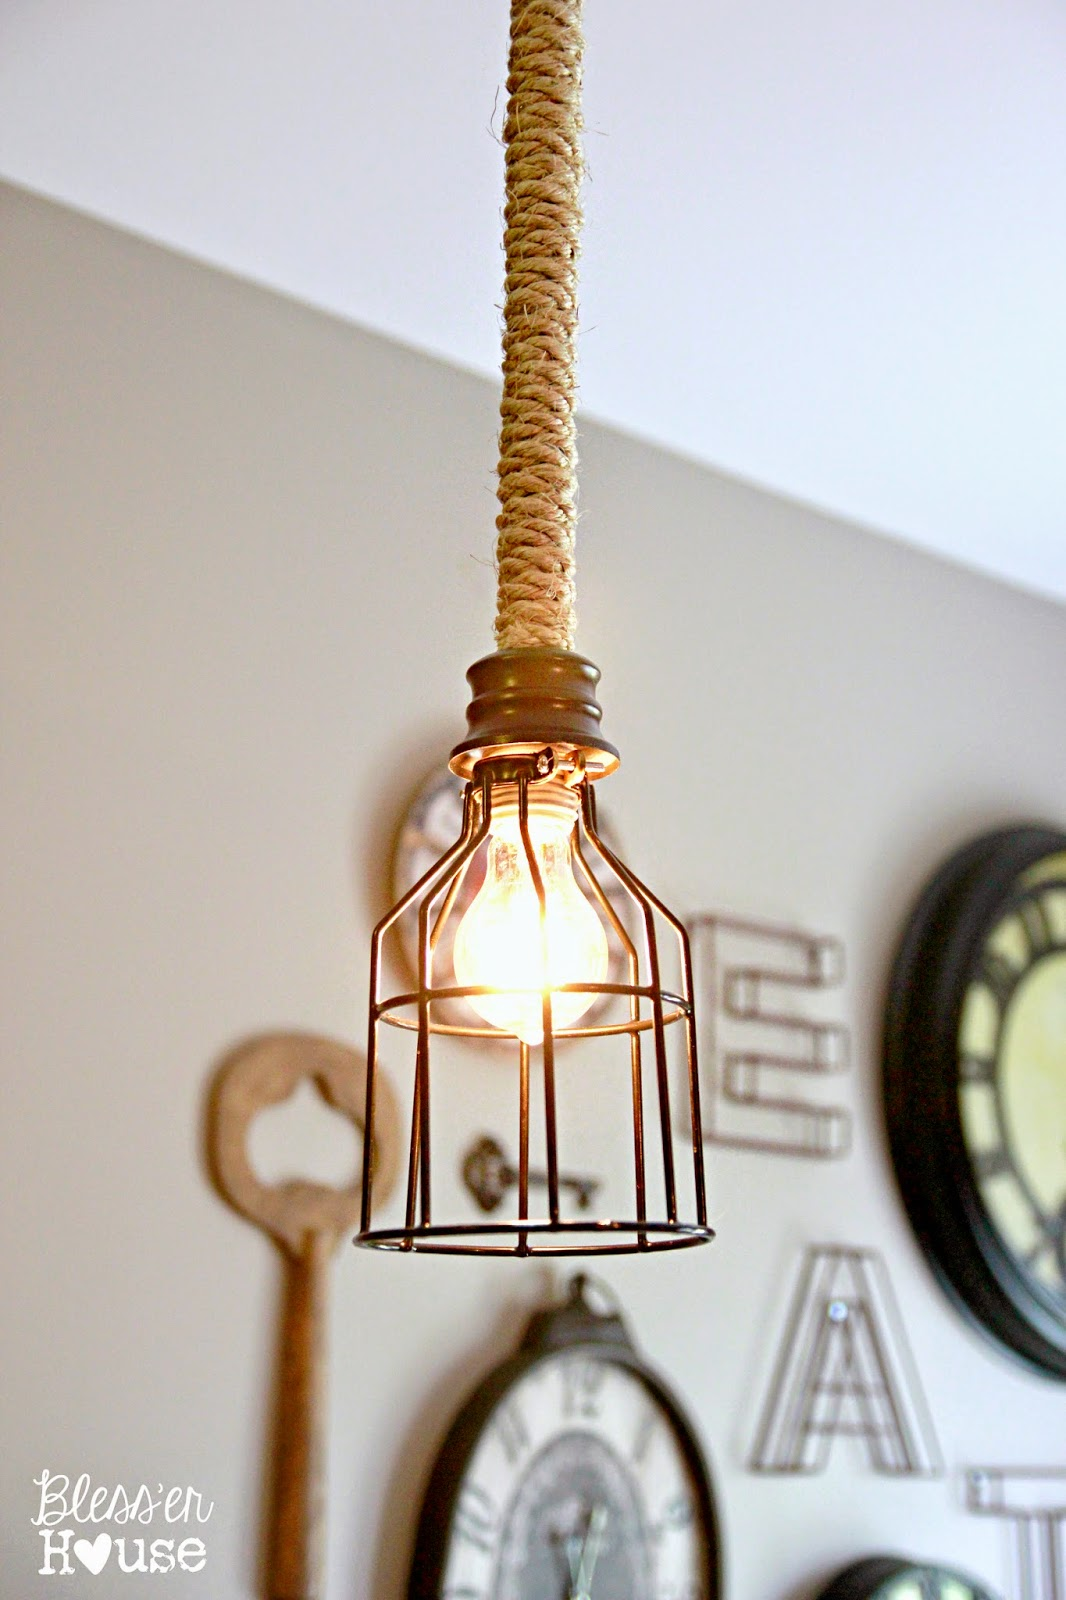 creative room living bulb buy light style products personality edison industrial product for american rope vintage loft pendant lamp image